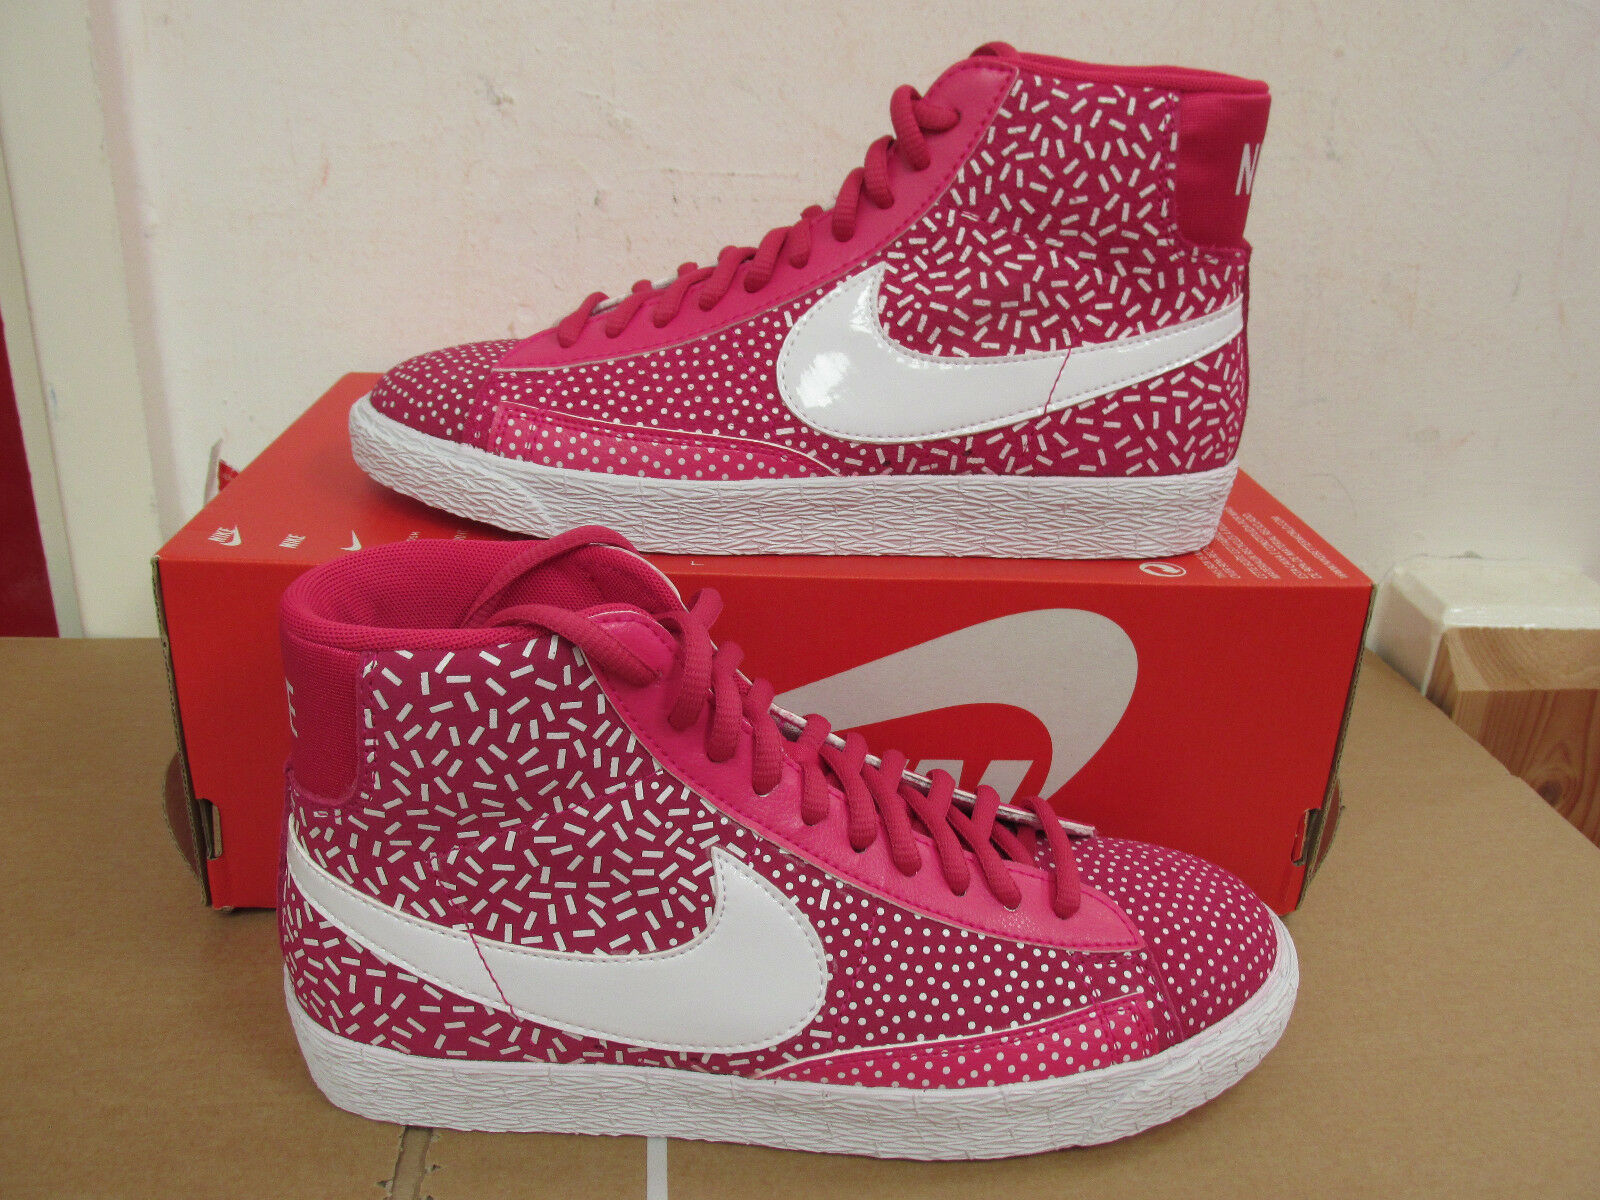 Brand discount Nike Womens Blazer Mid Print Hi Top 536698 603 sneakers shoes CLEARANCE